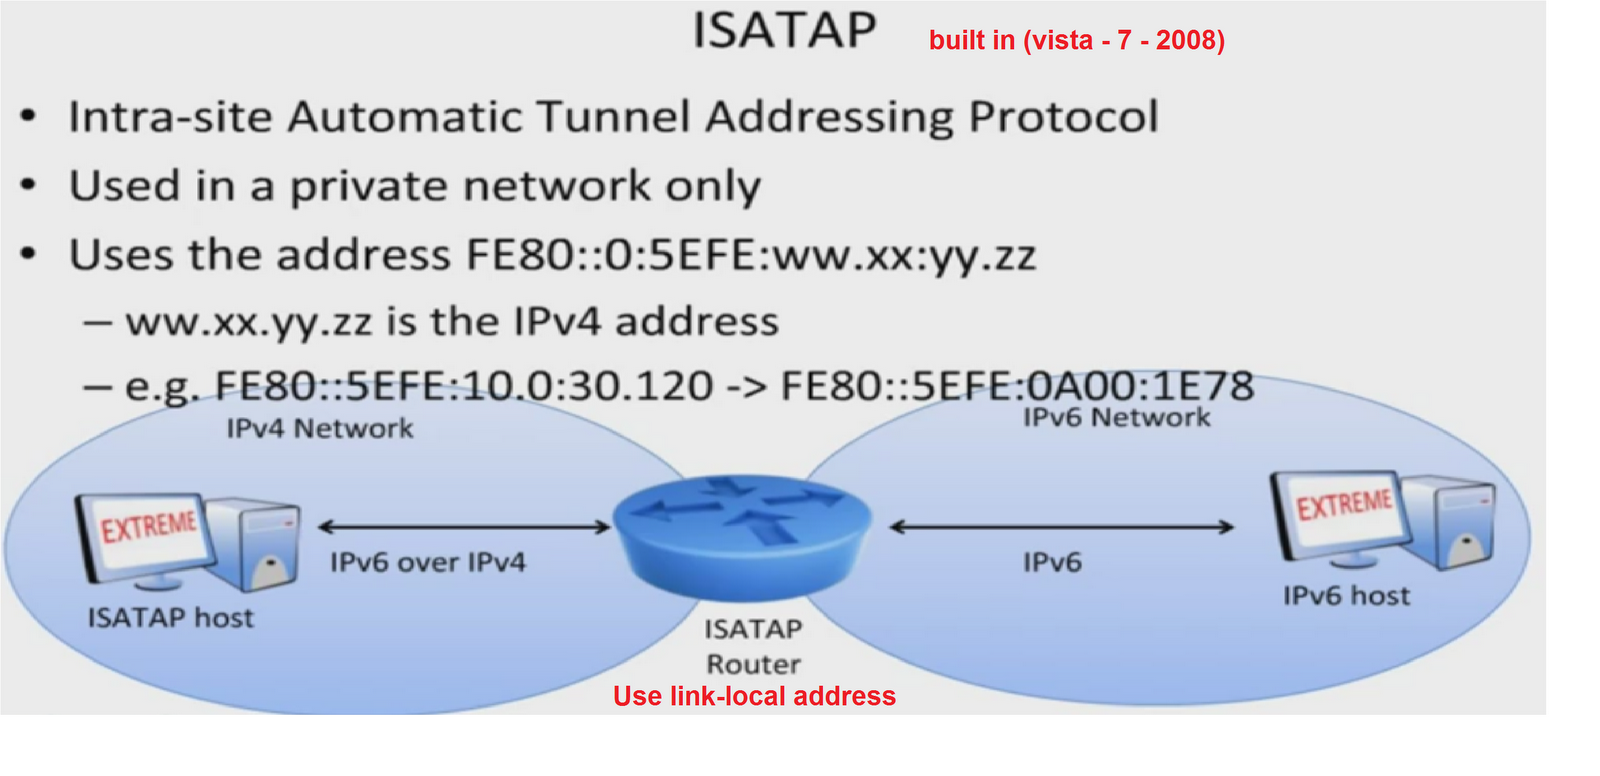 Easy Networking: ISATAP Router...